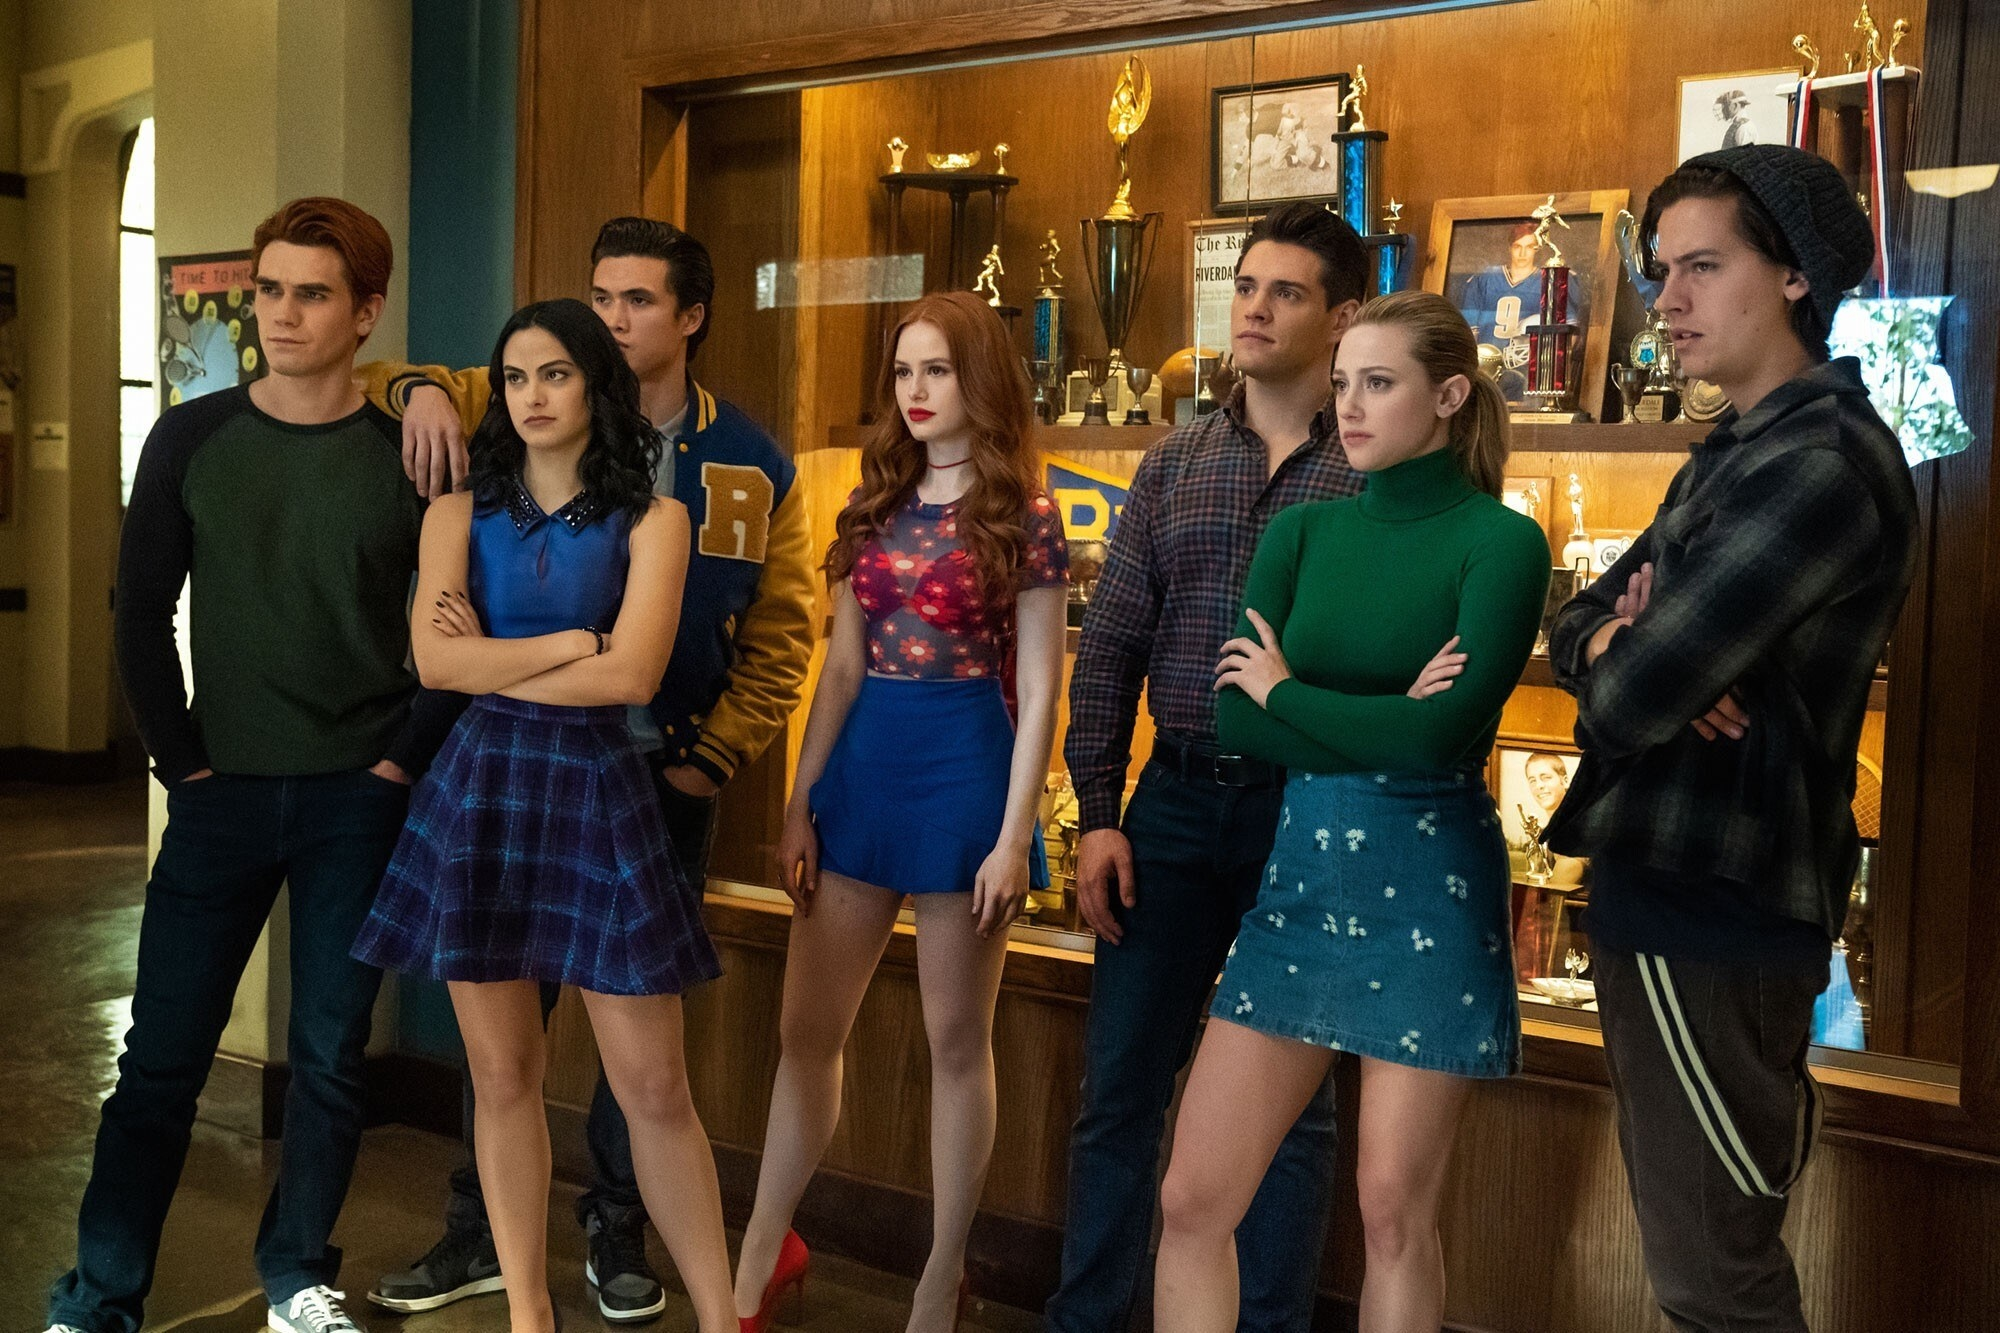 KJ Apa, Camila Mendes, Charles Melton, Madelaine Petsch, Casey Cott, Lili Reinhart, and Cole Sprouse stand in front of a trophy case